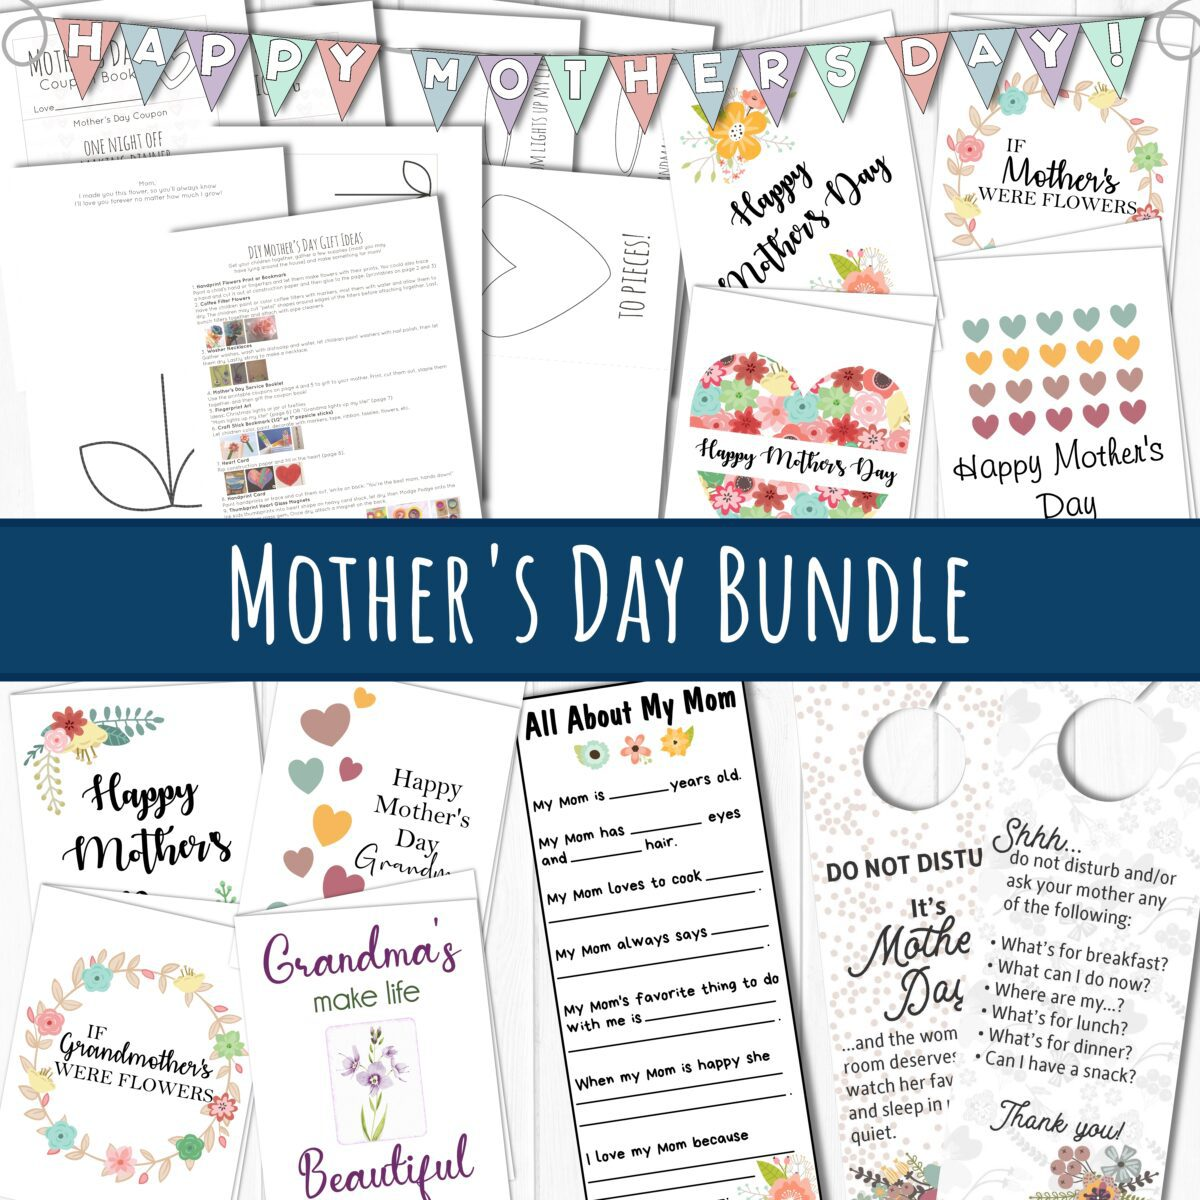 Mother's Day bundle by Come Follow Me FHE